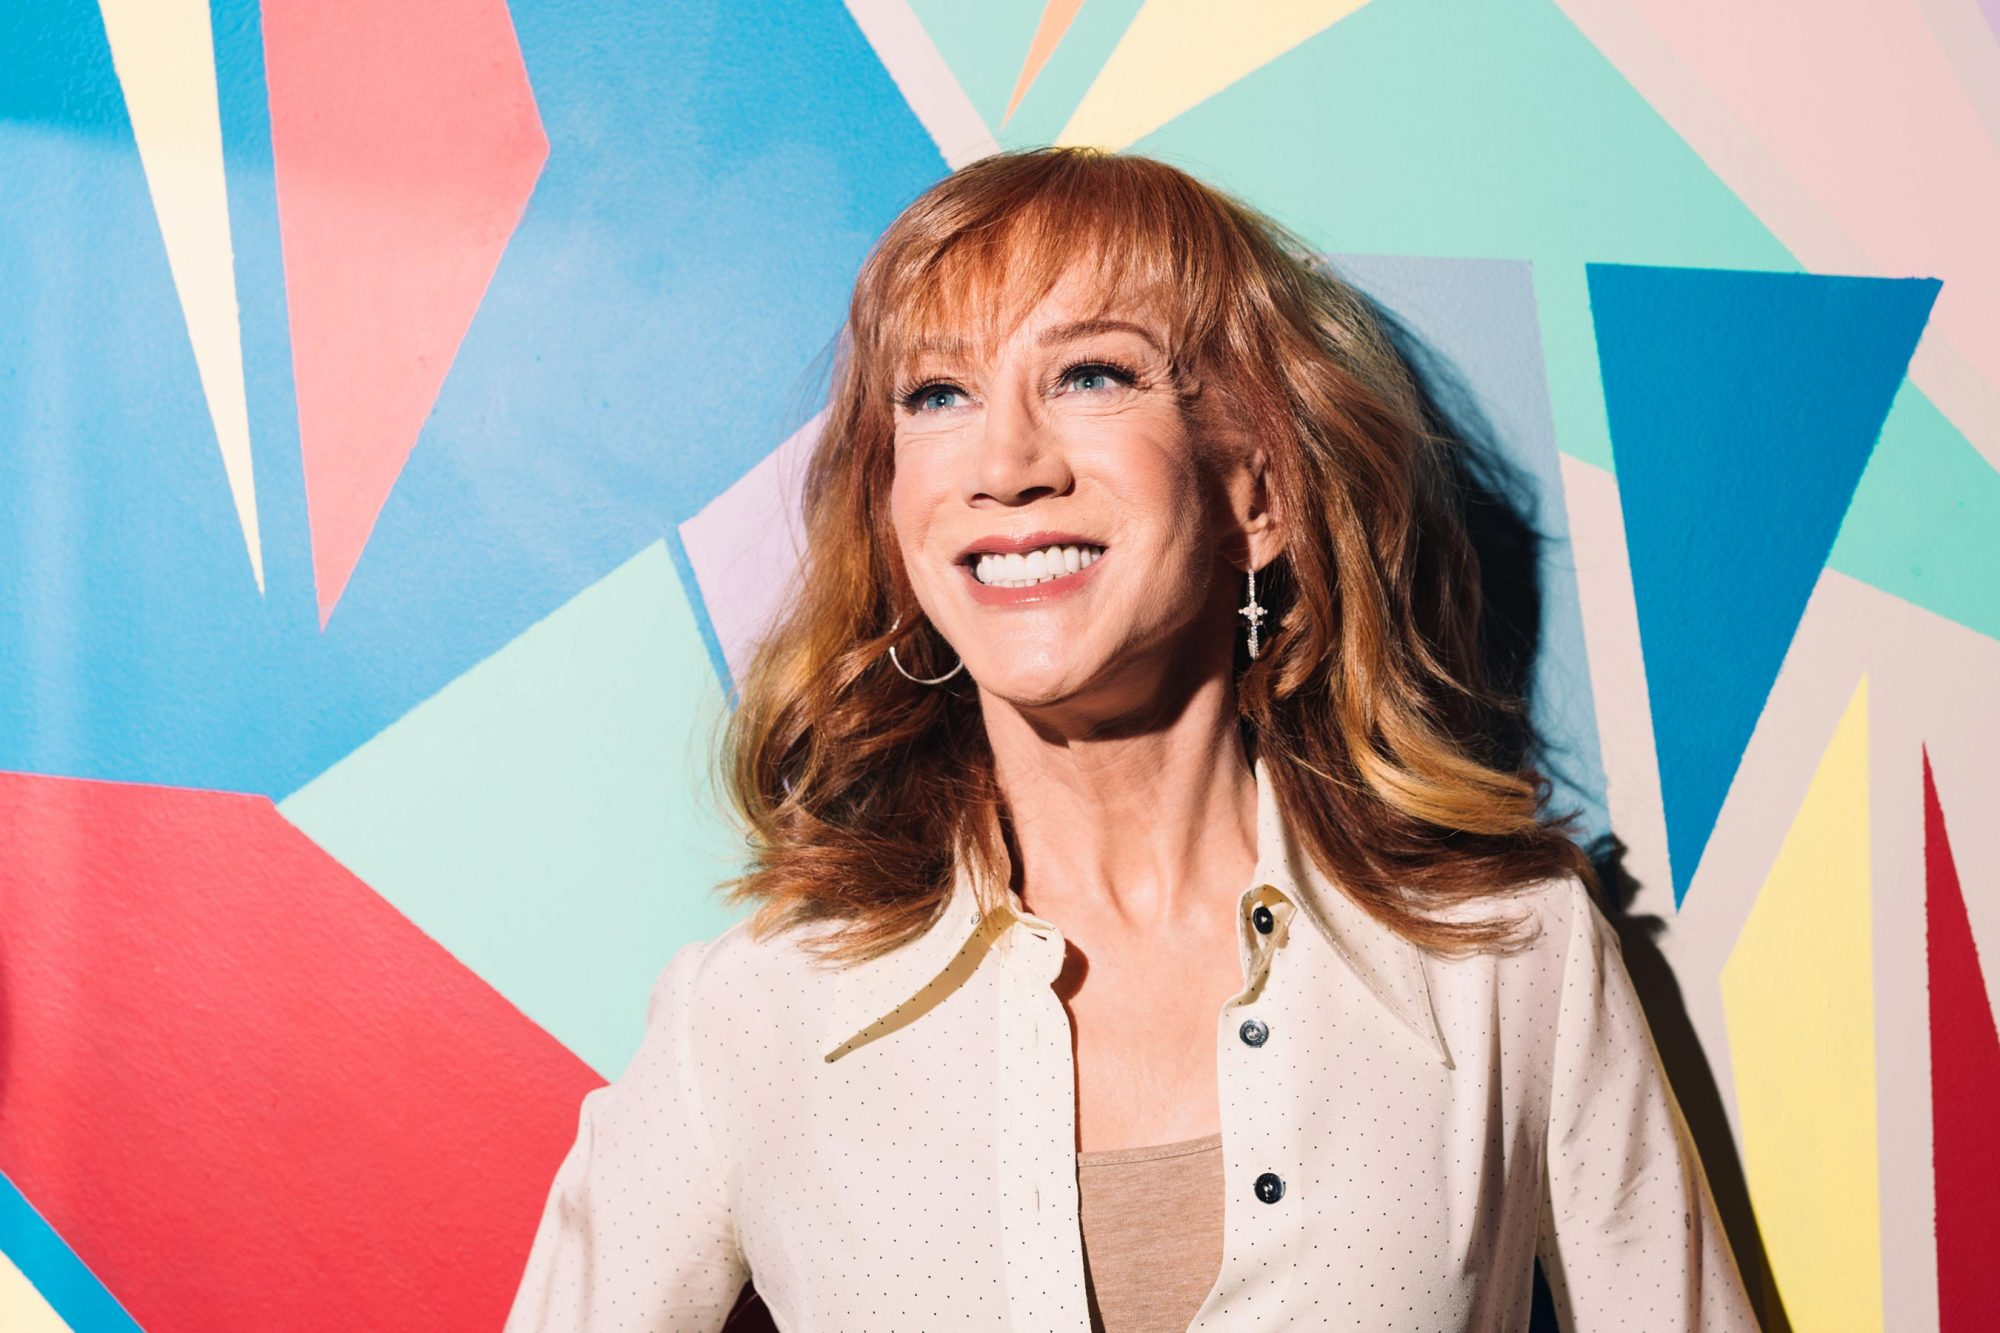 Kathy Griffin, The Wrap, March 9, 2017